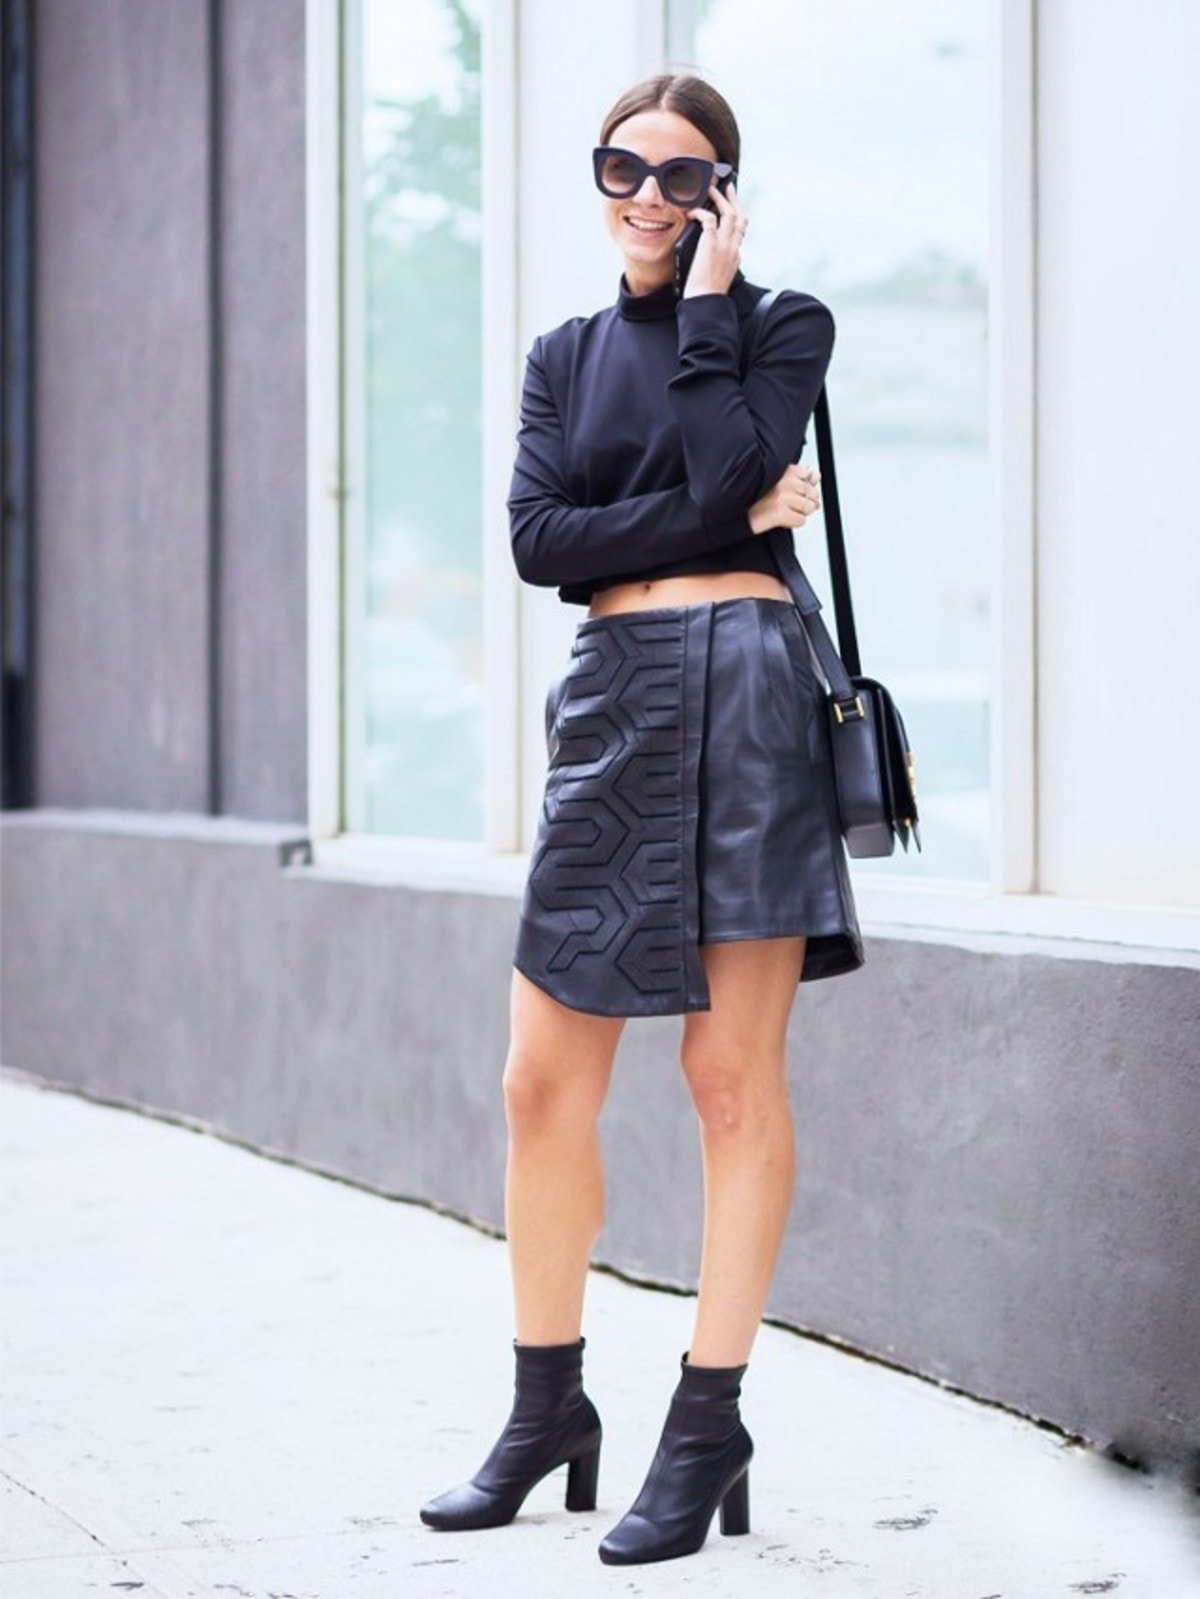 how-to-wear-ankle-boots-5-ways-to-style-them-now-1851706-1469707713.640x0c